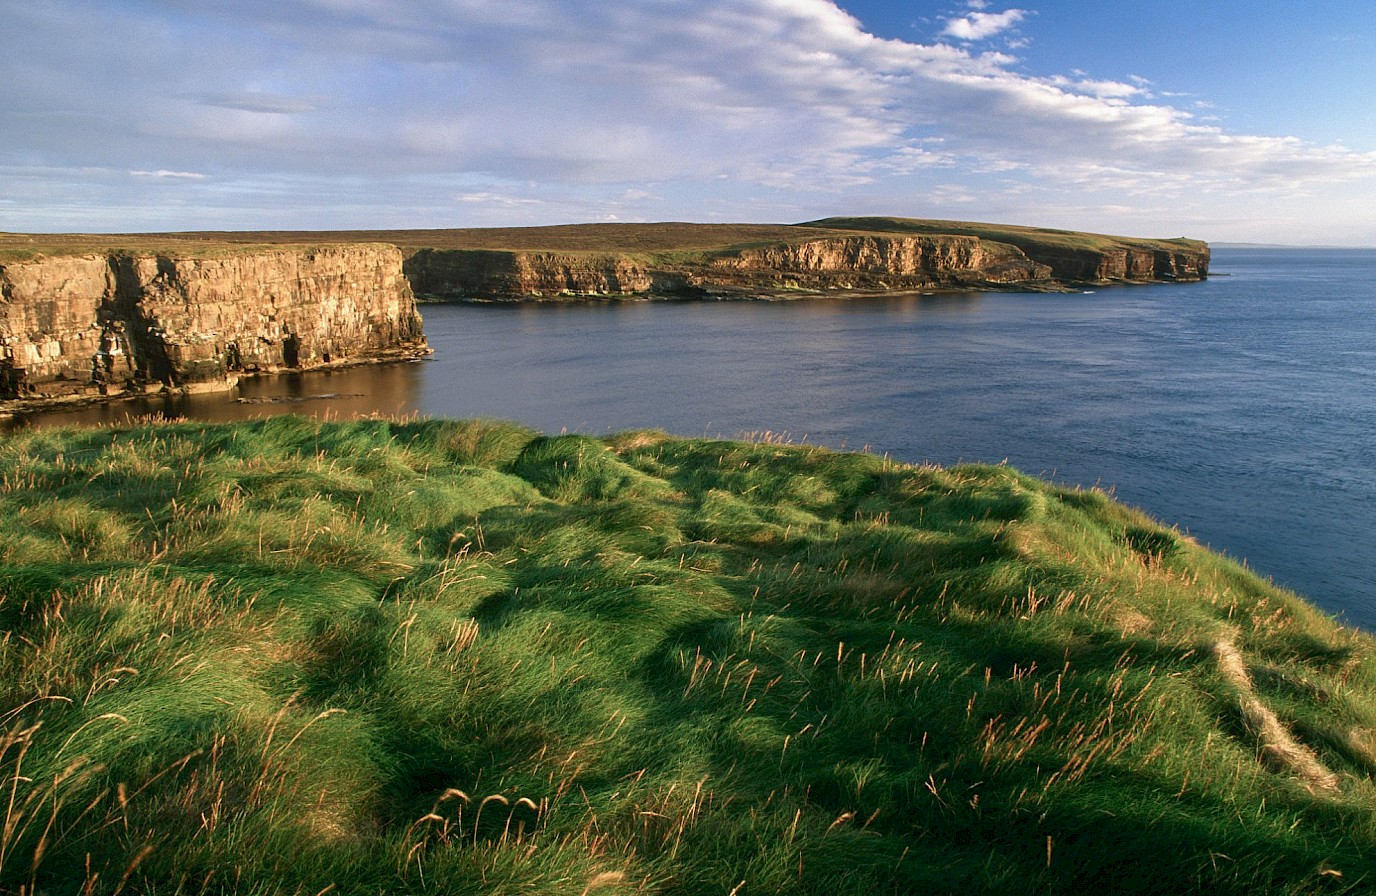 View over Mull Head, Orkney - image by VisitScotland/Iain Sarjeant